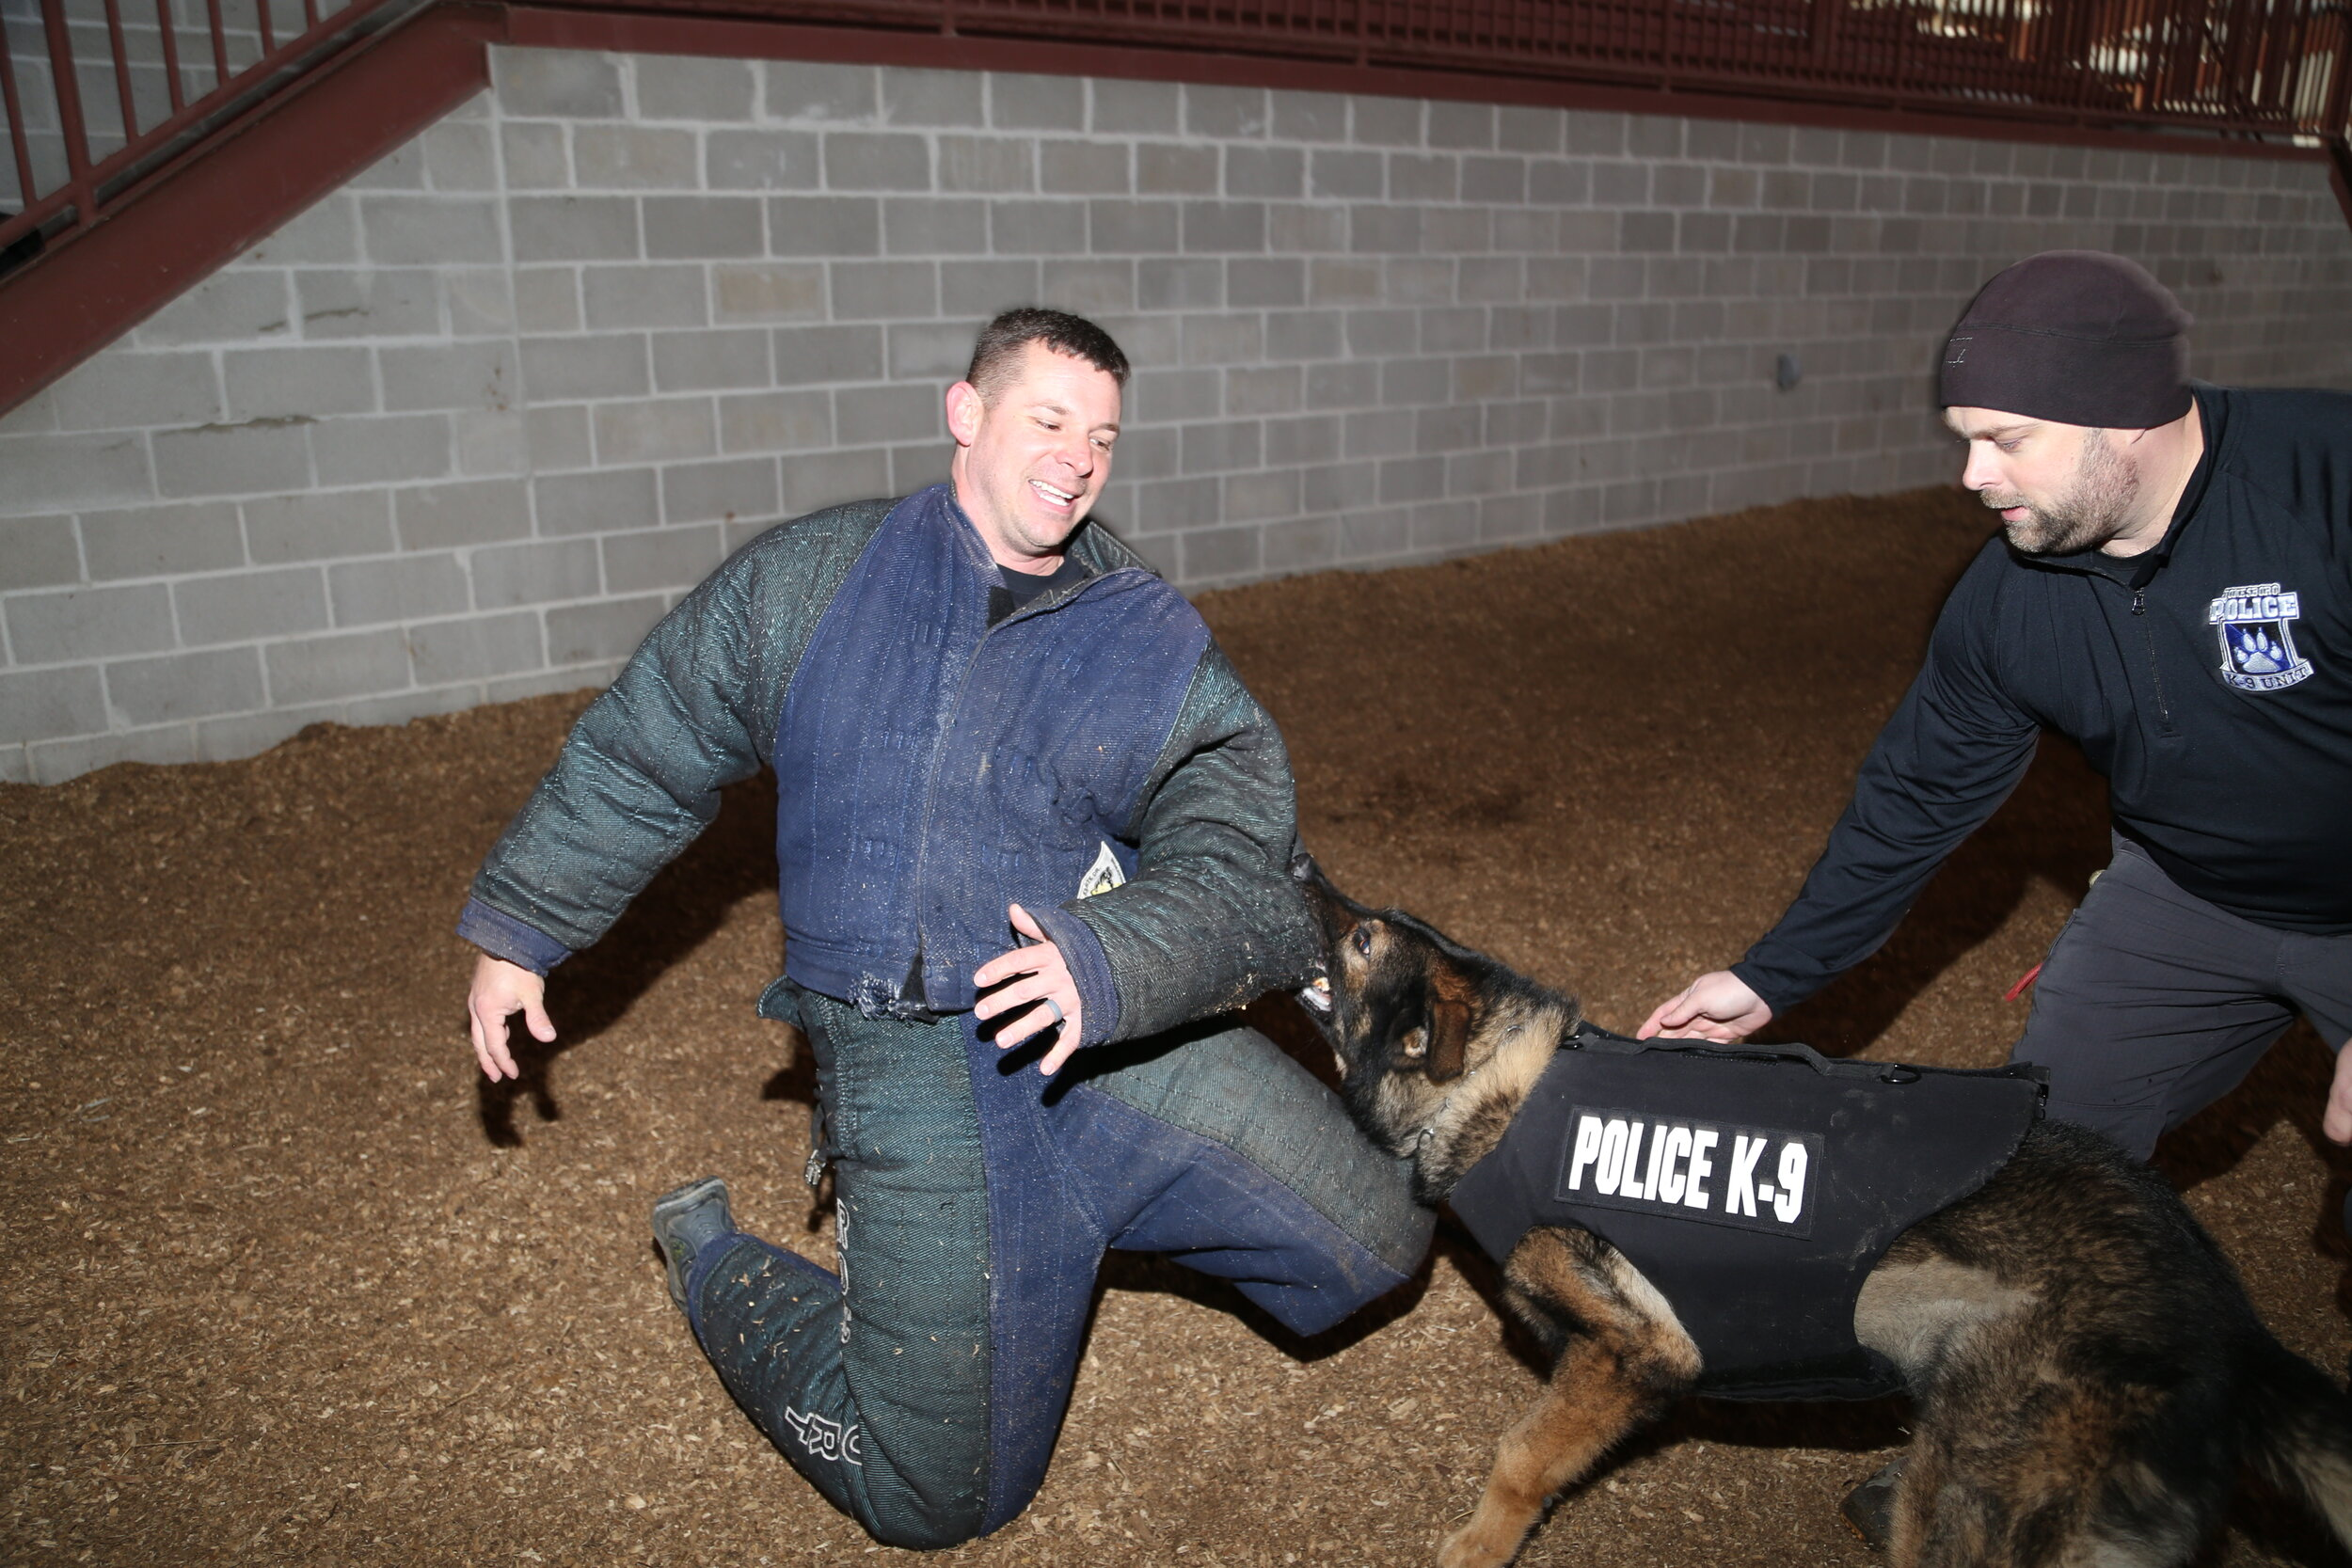 DOG TRAINING - We offer quality training programs for working dogs to meet the demands of today's military and law enforcement agencies as well as the public around Northeast Arkansas and beyond. From drug detection to obedience classes, we take pride in training each dog for success.